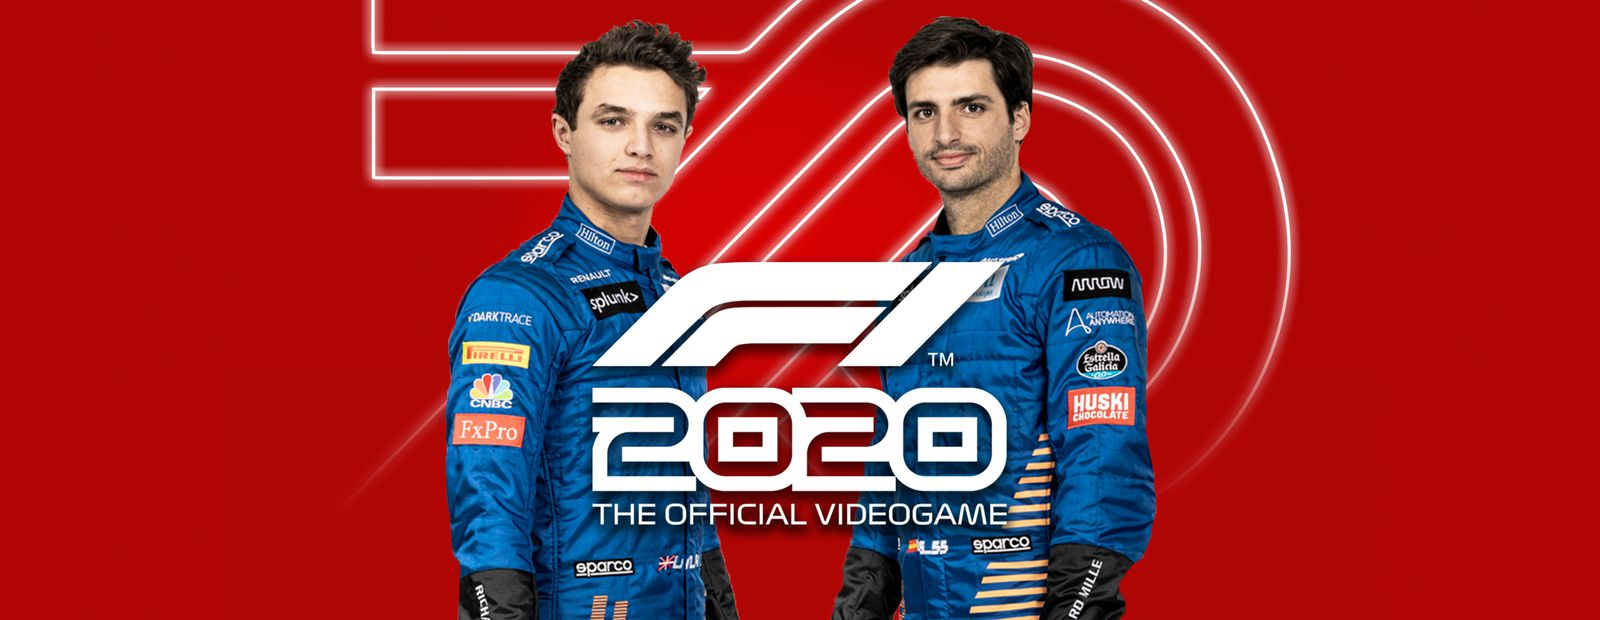 Win the Official F1 2020 game